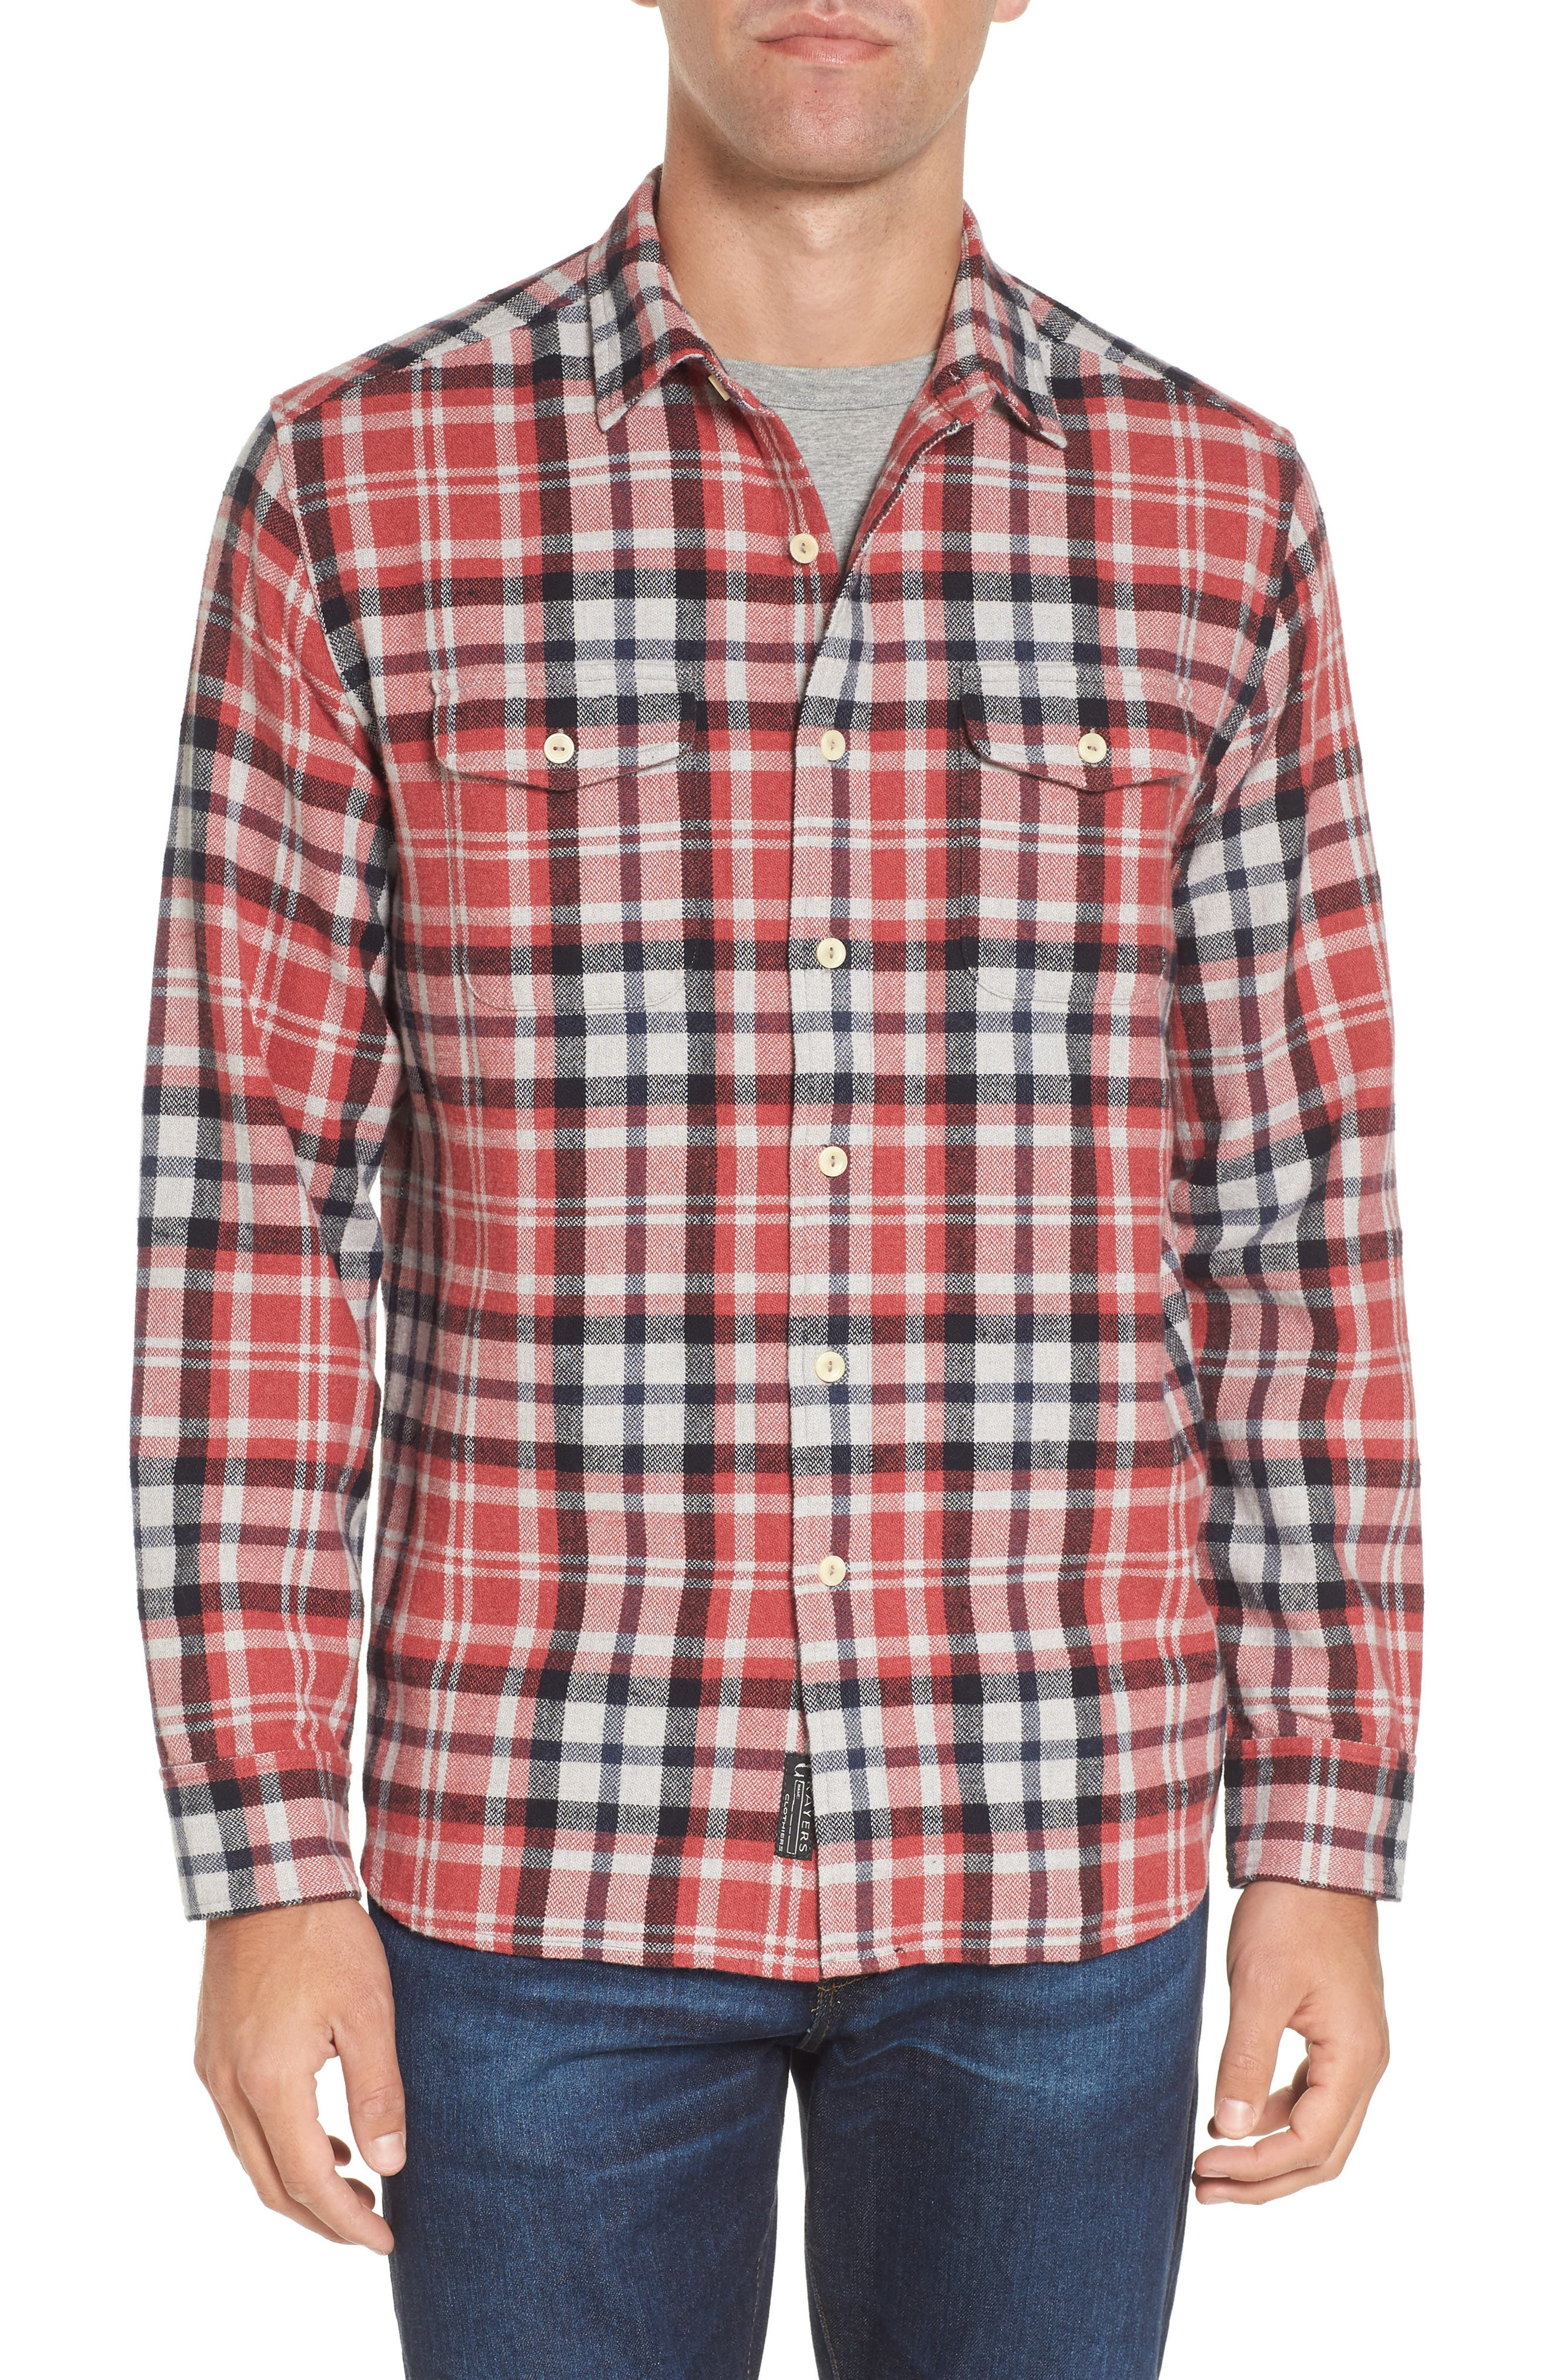 Grayers Brampton Textured Plaid Flannel Shirt